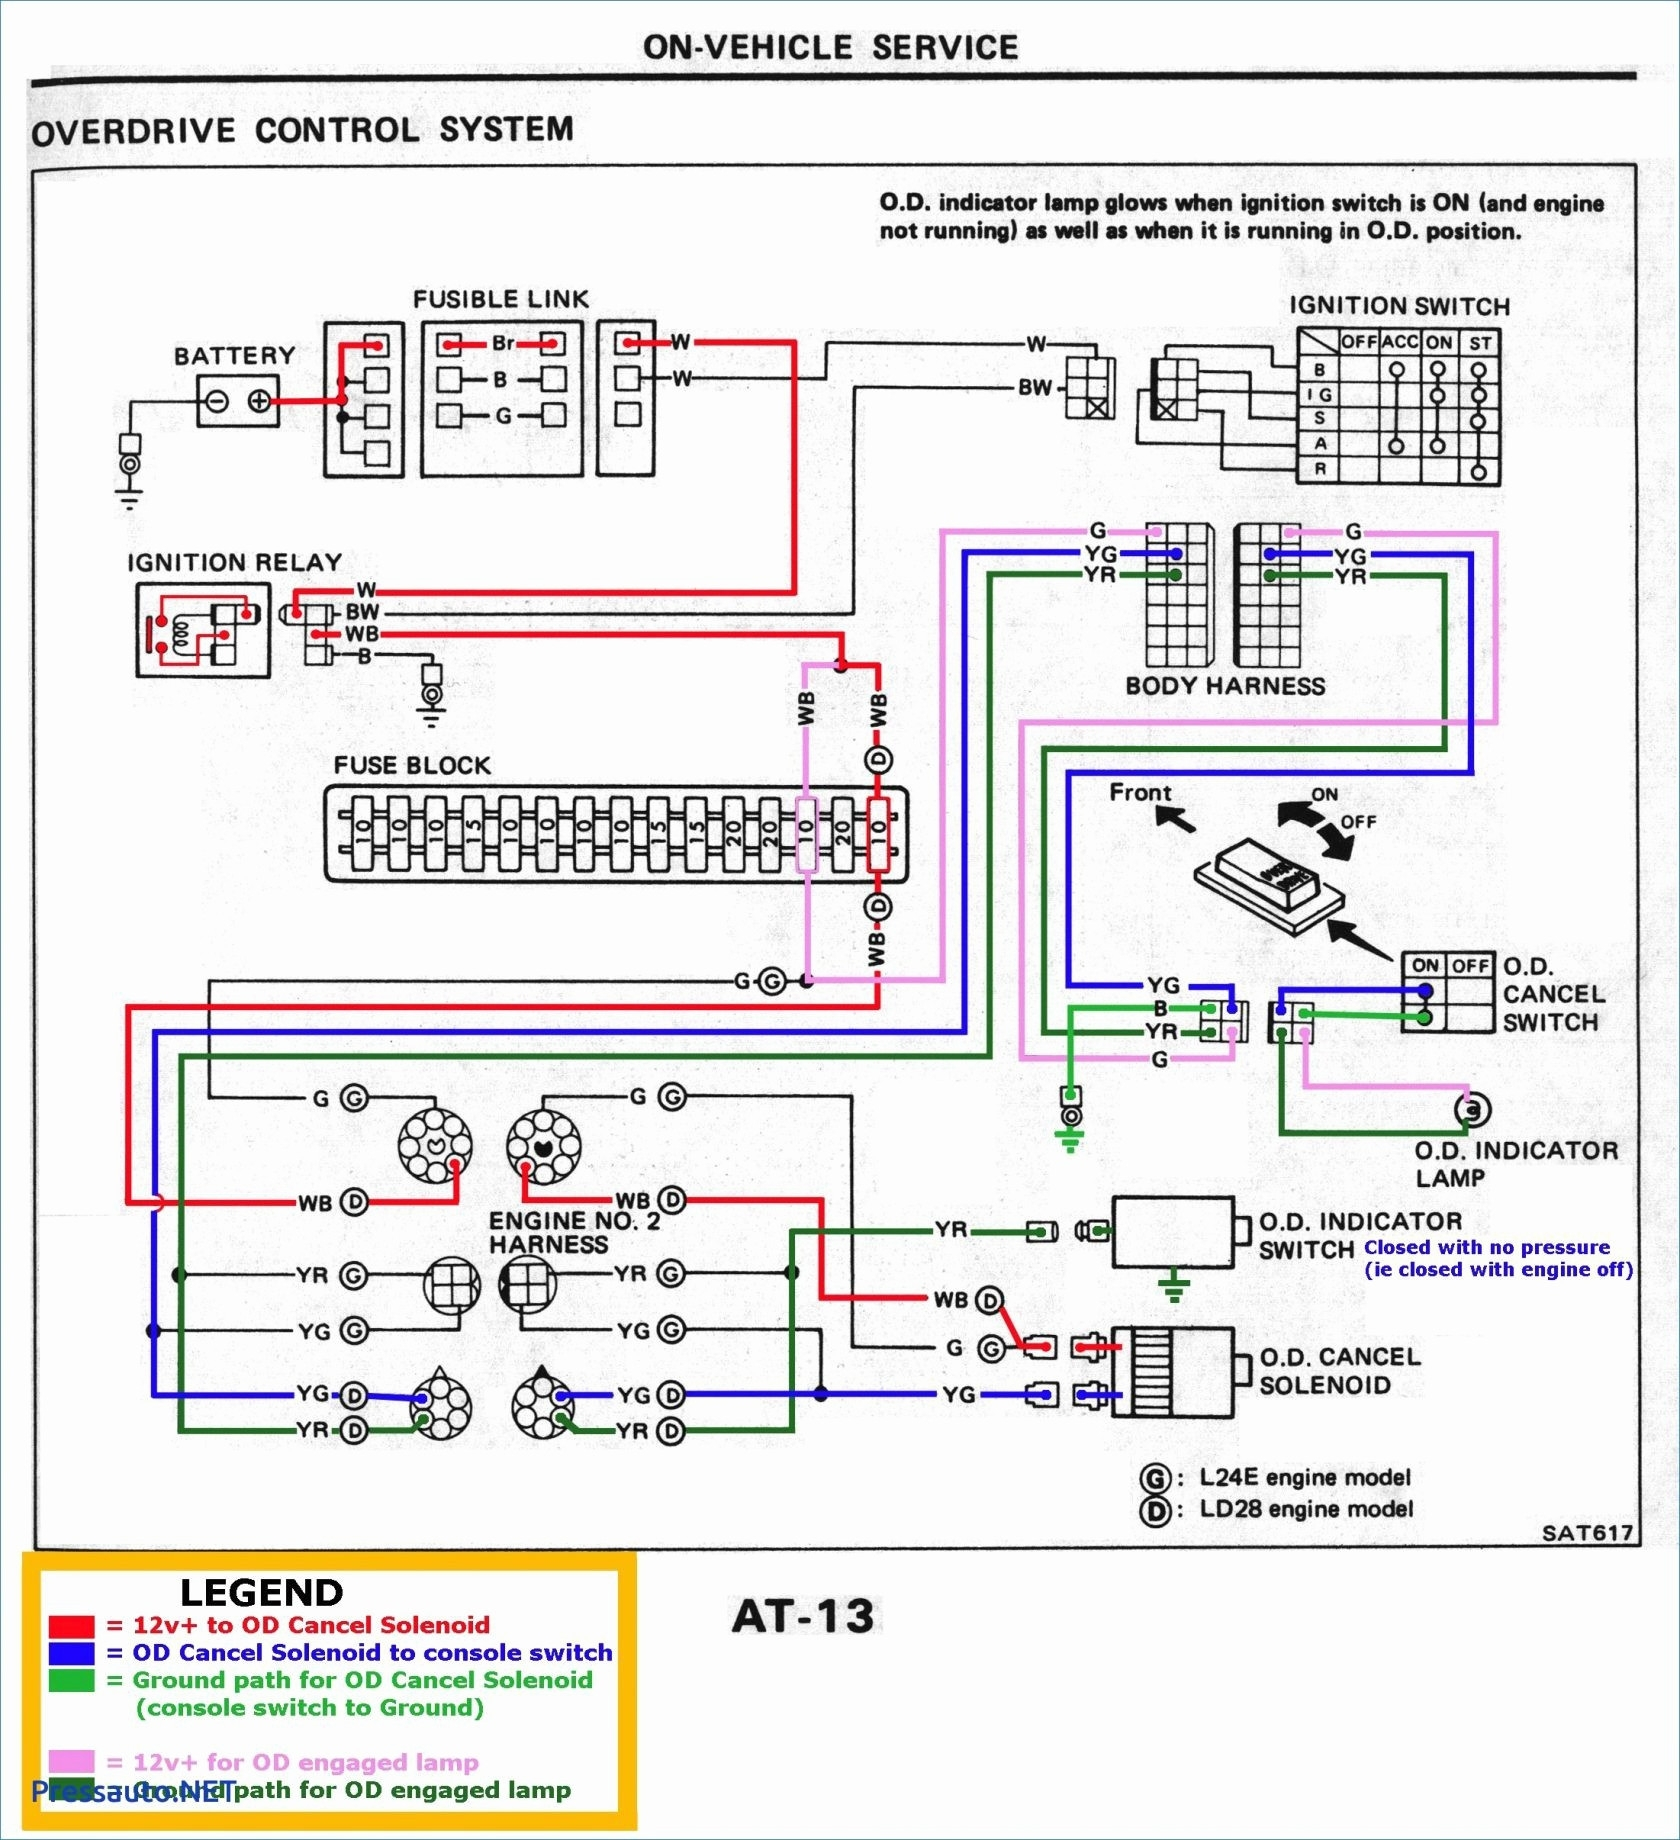 Husqvarna Lawn Tractor Riding Mower Wiring Diagram